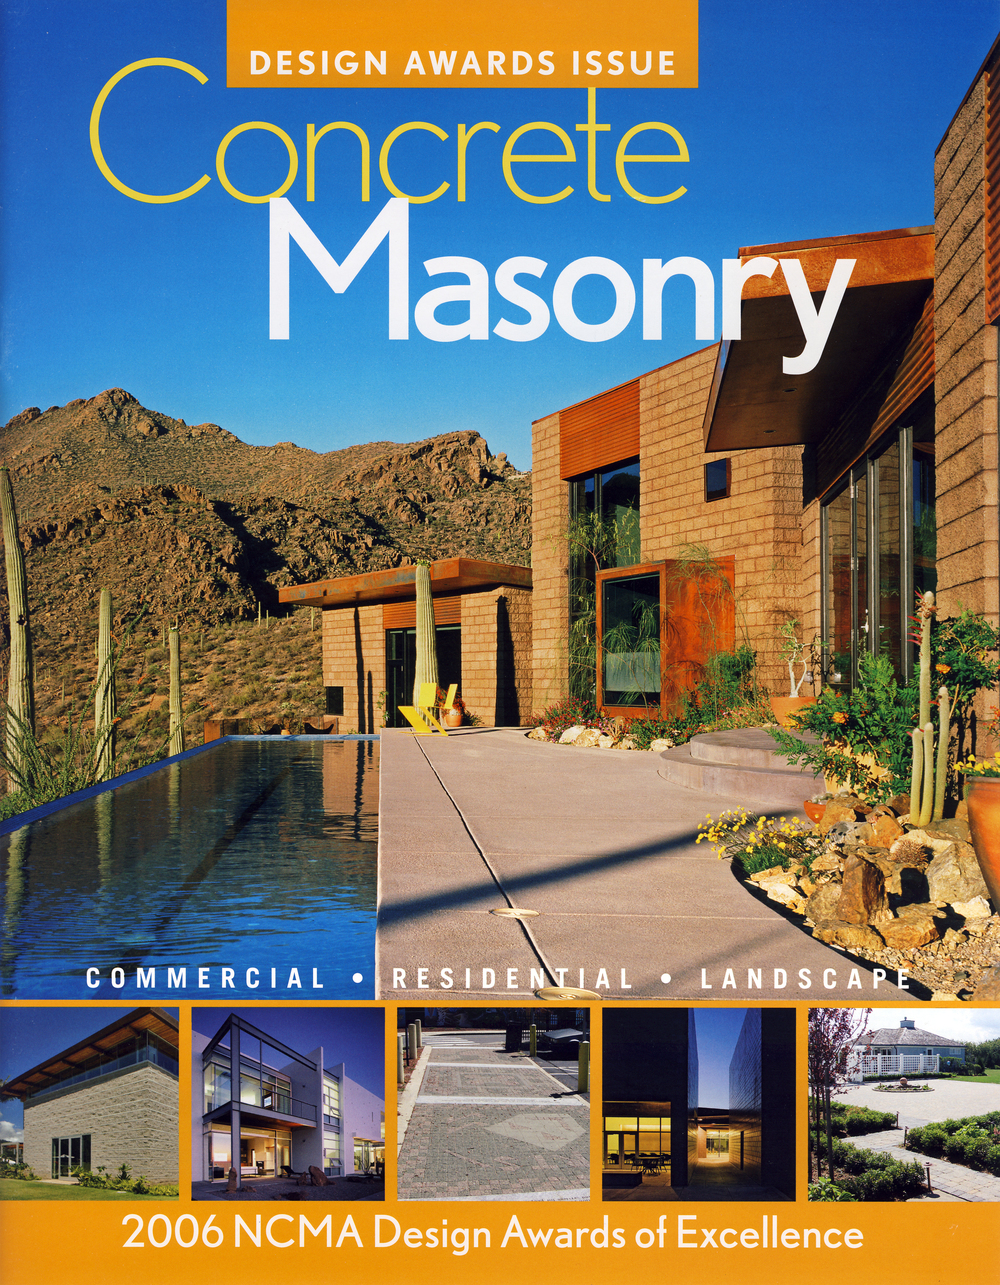 concrete masonry design awards issue 2006.jpg